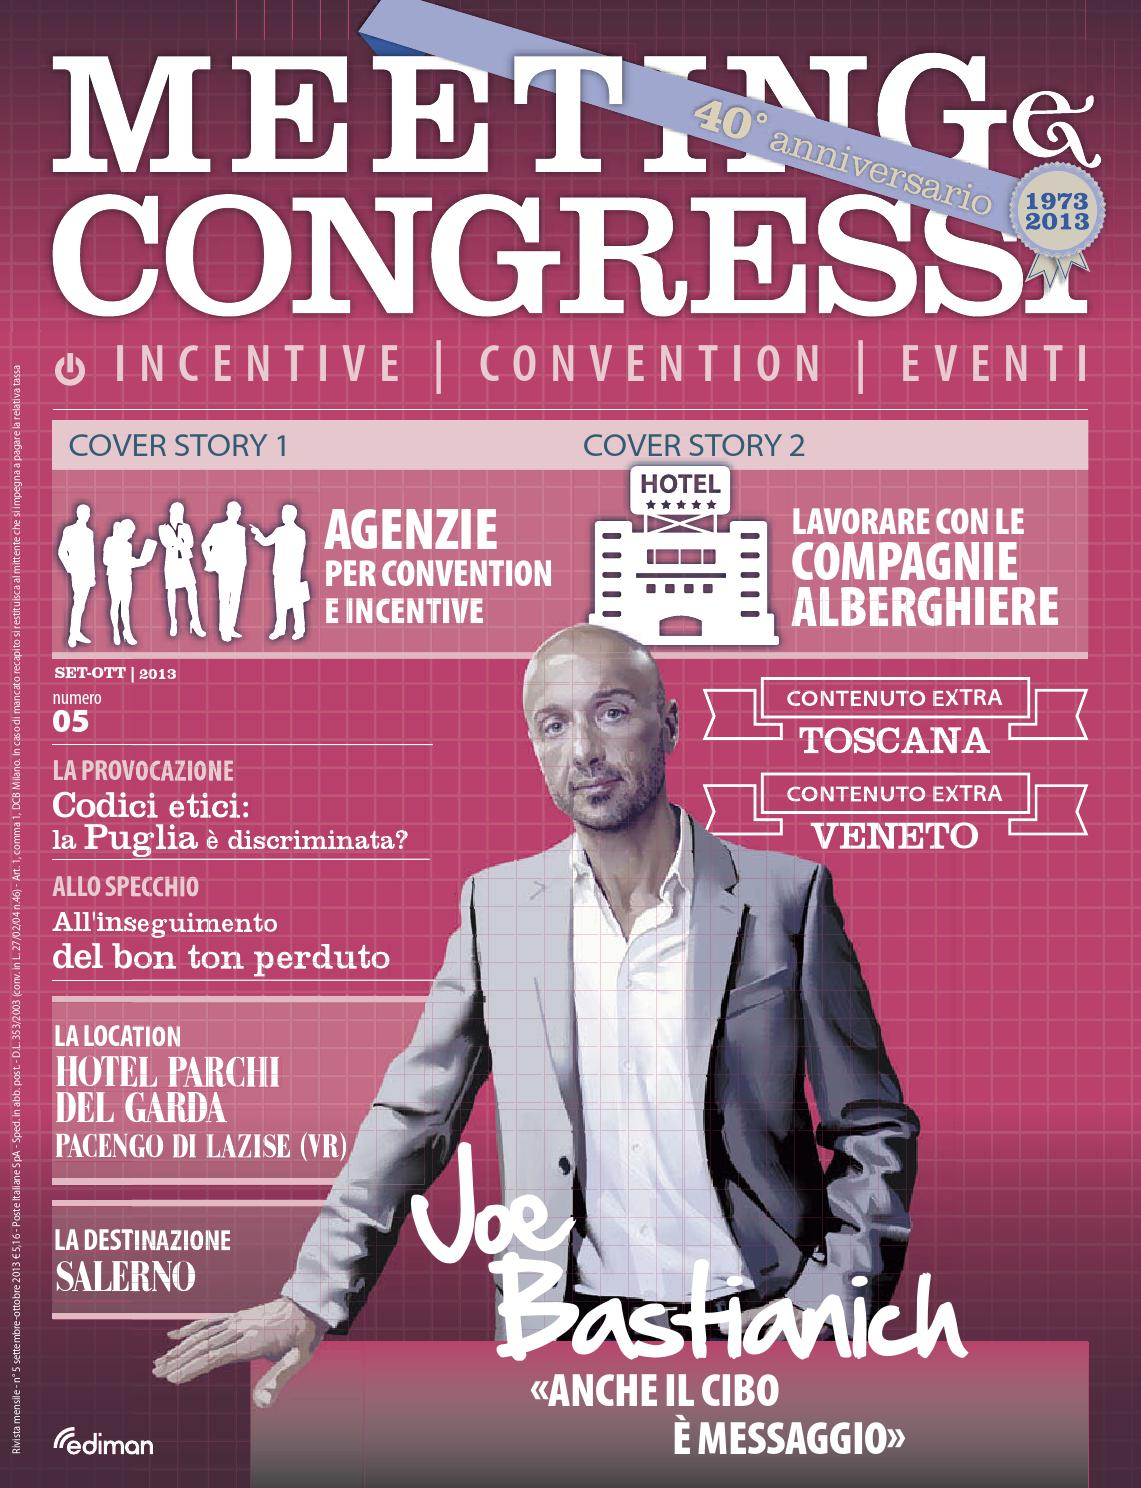 Meeting e Congressi - Mag Giu 2016 by Ediman - issuu 26cdec90a6a